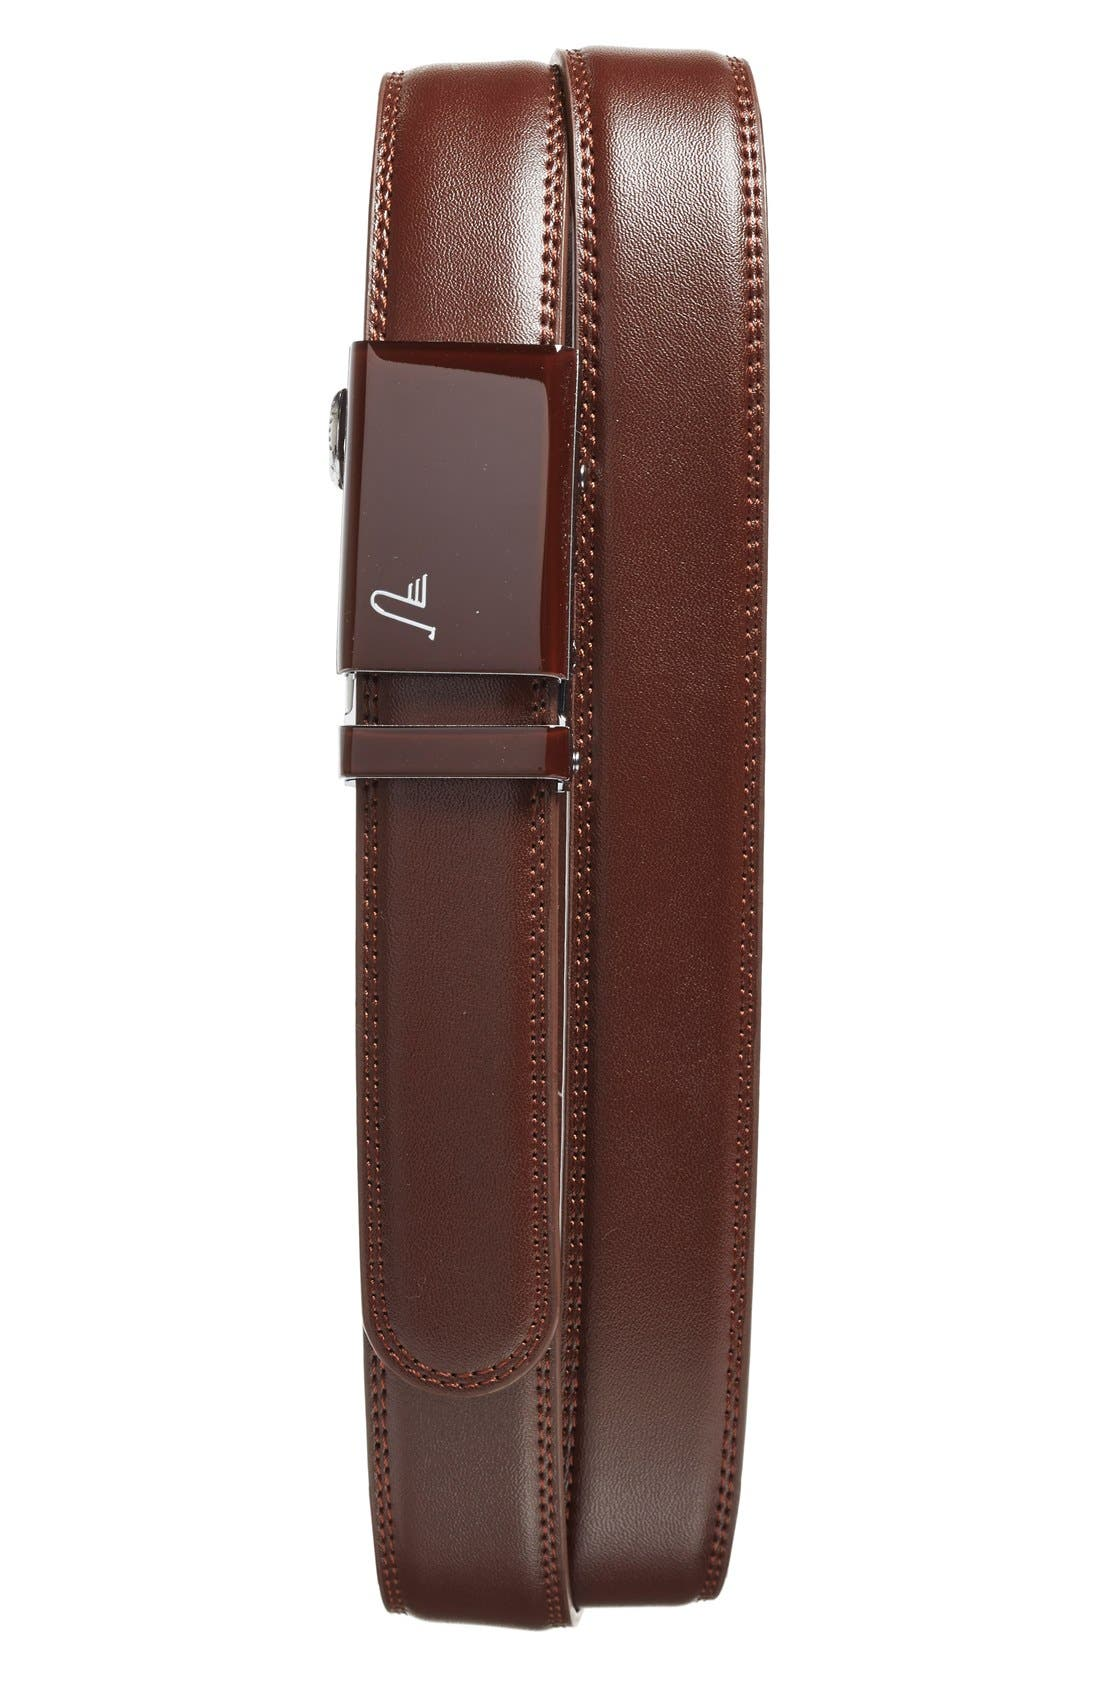 MISSION BELT 'Chocolate' Leather Belt, Main, color, BROWN/ BROWN